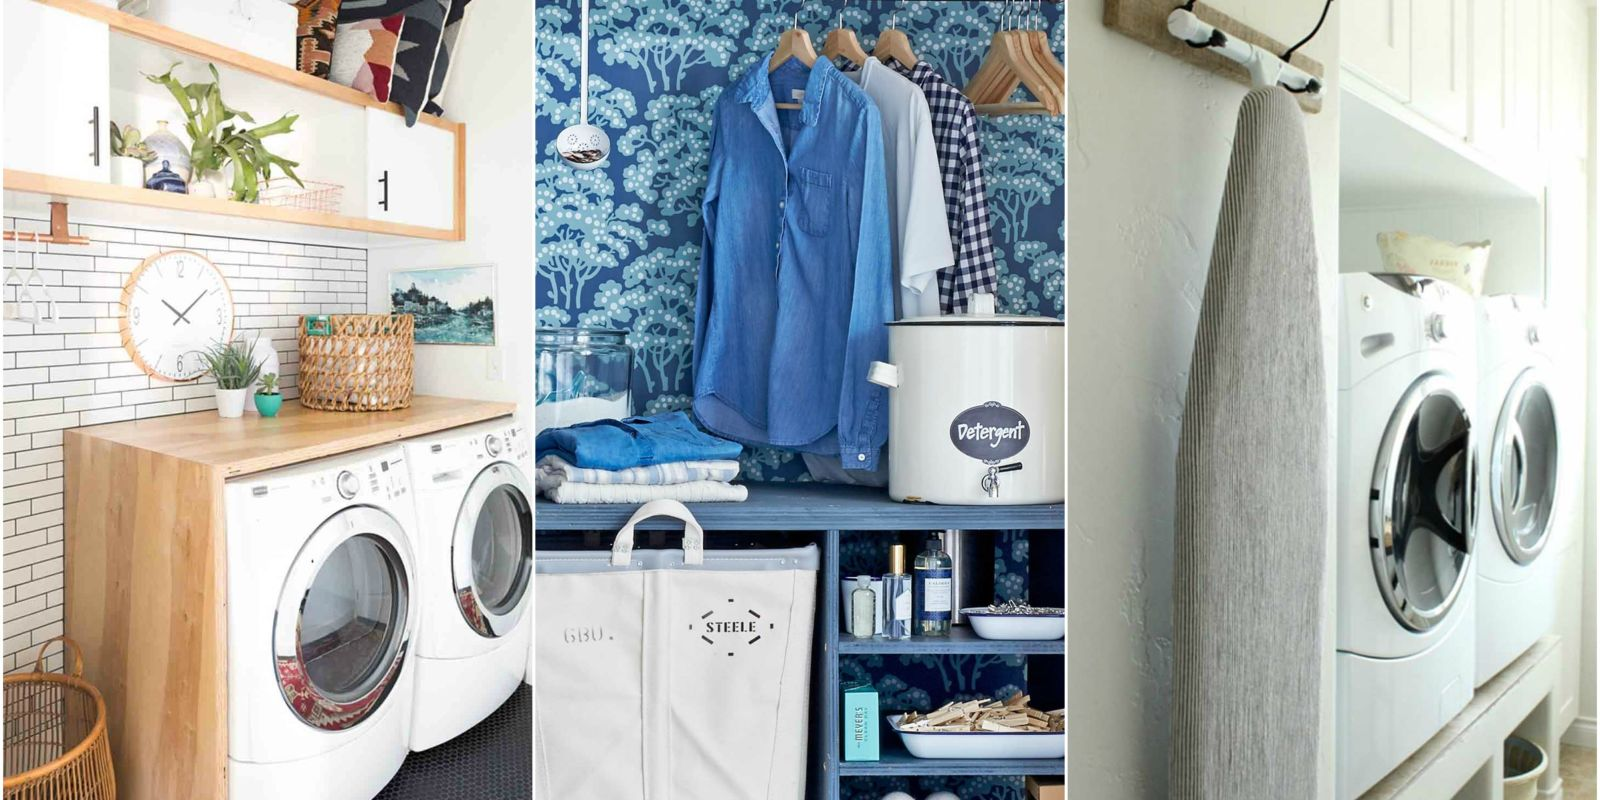 15 Laundry Room Storage And Organization Ideas How To